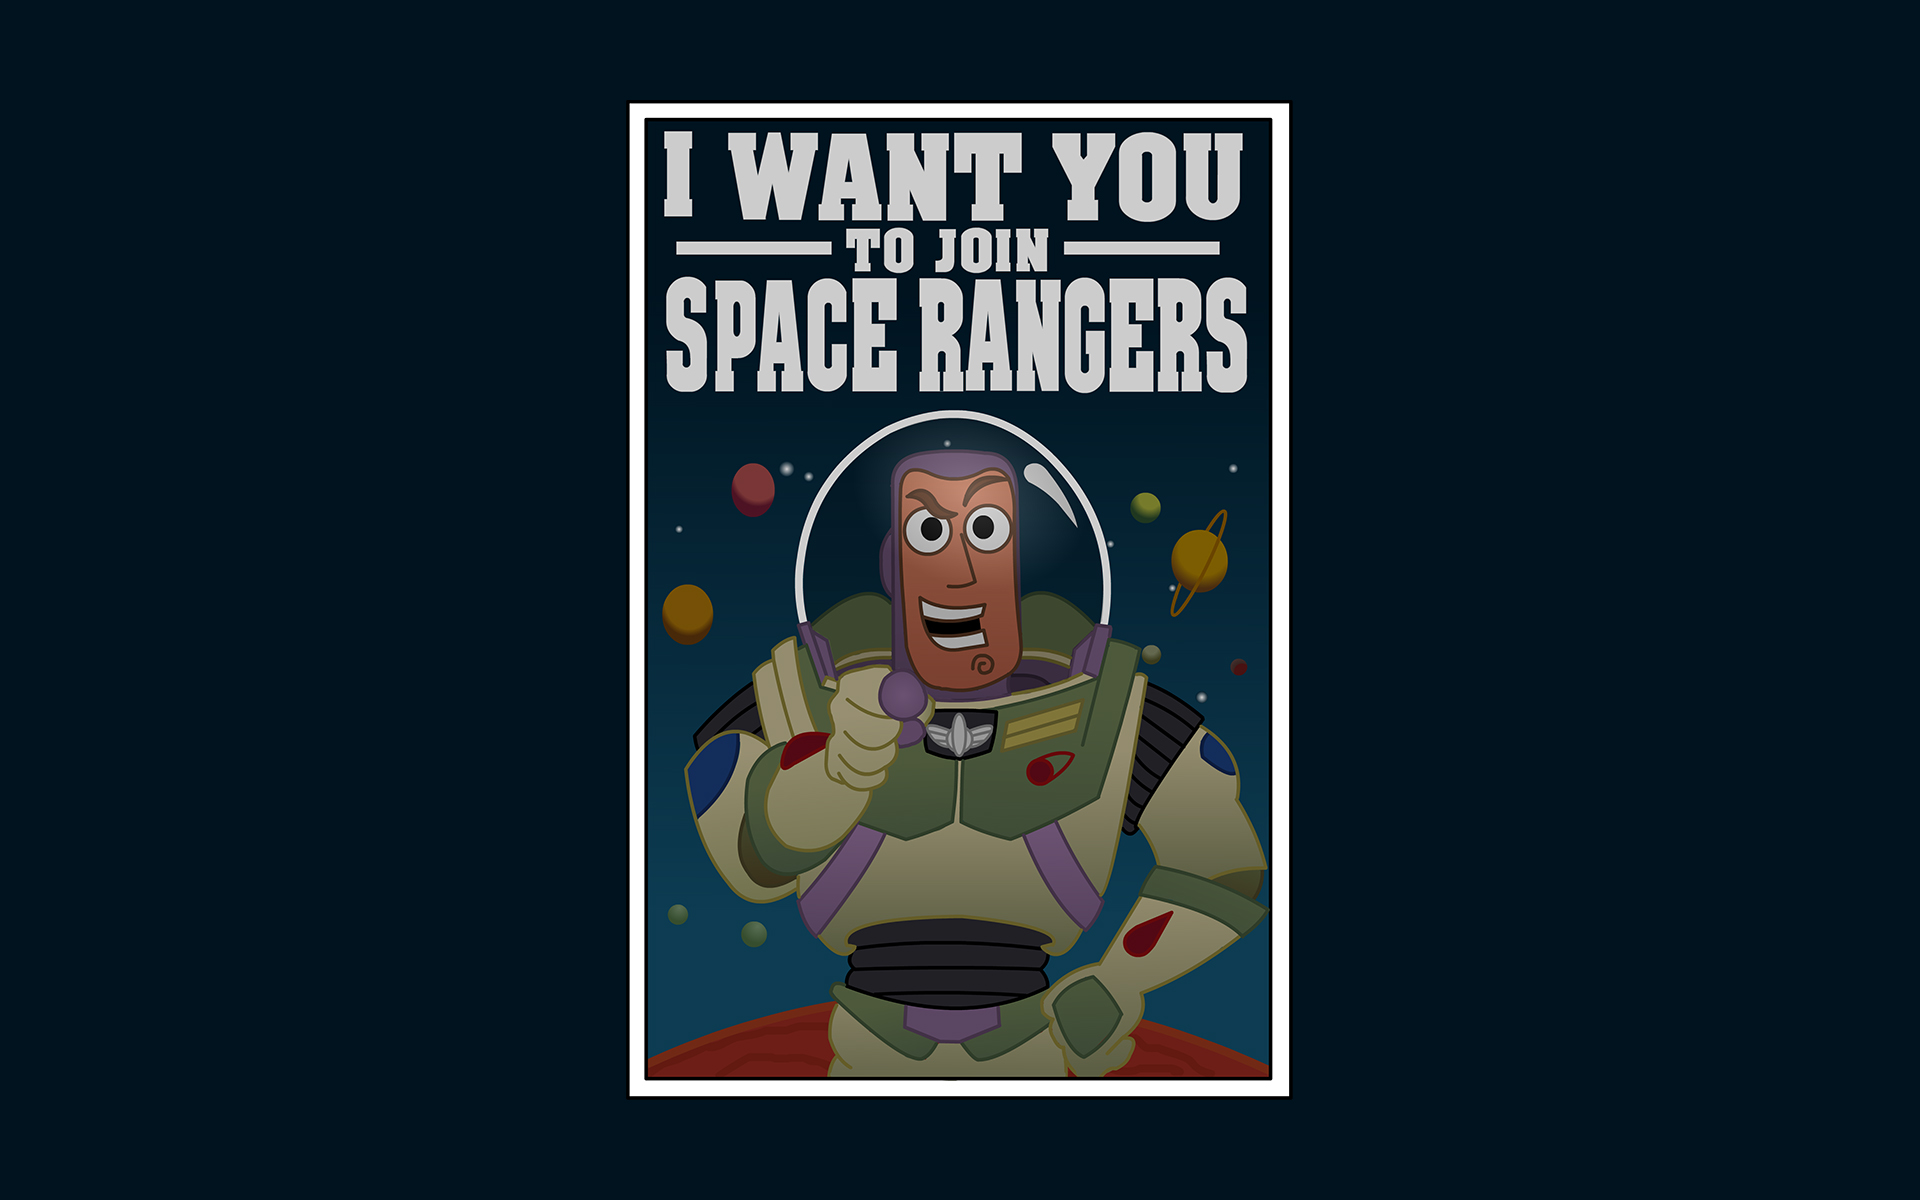 Toy Story Buzz Lightyear Space Rangers Poster Wallpaper 1920x1200